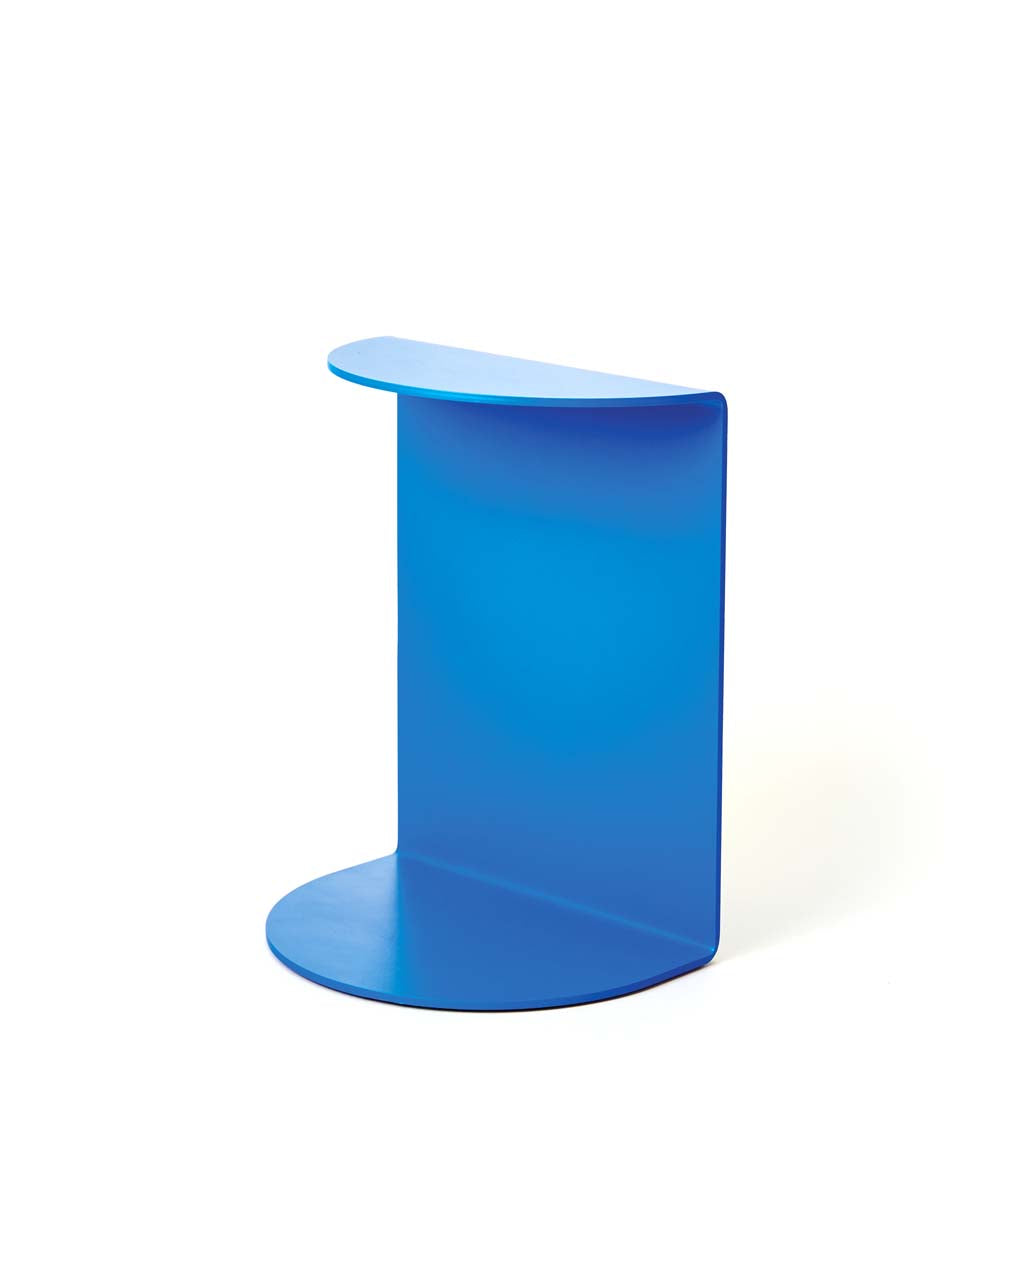 This Reference Bookend by Areaware comes in bright blue.